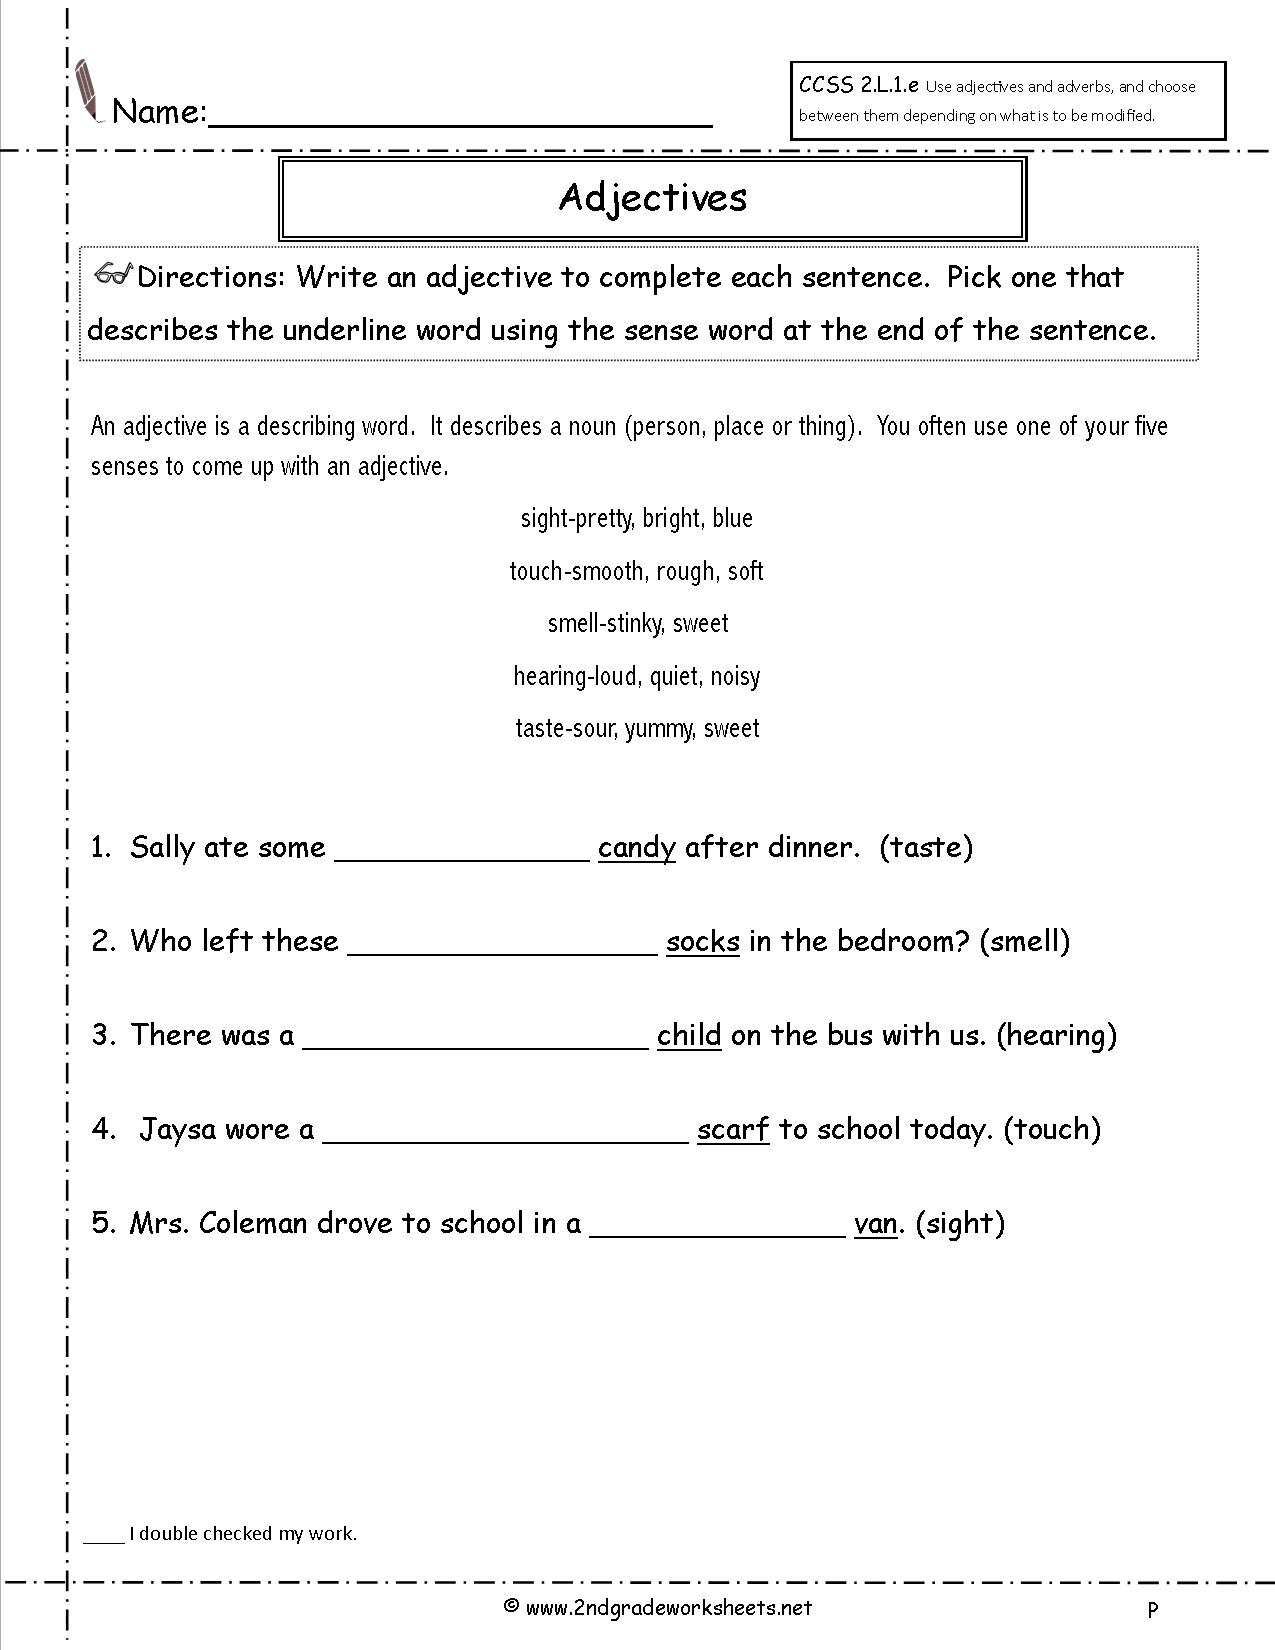 Worksheet Adjectives Worksheet For 3rd Grade adjective worksheets for grade 2 scalien free using adjectives worksheets